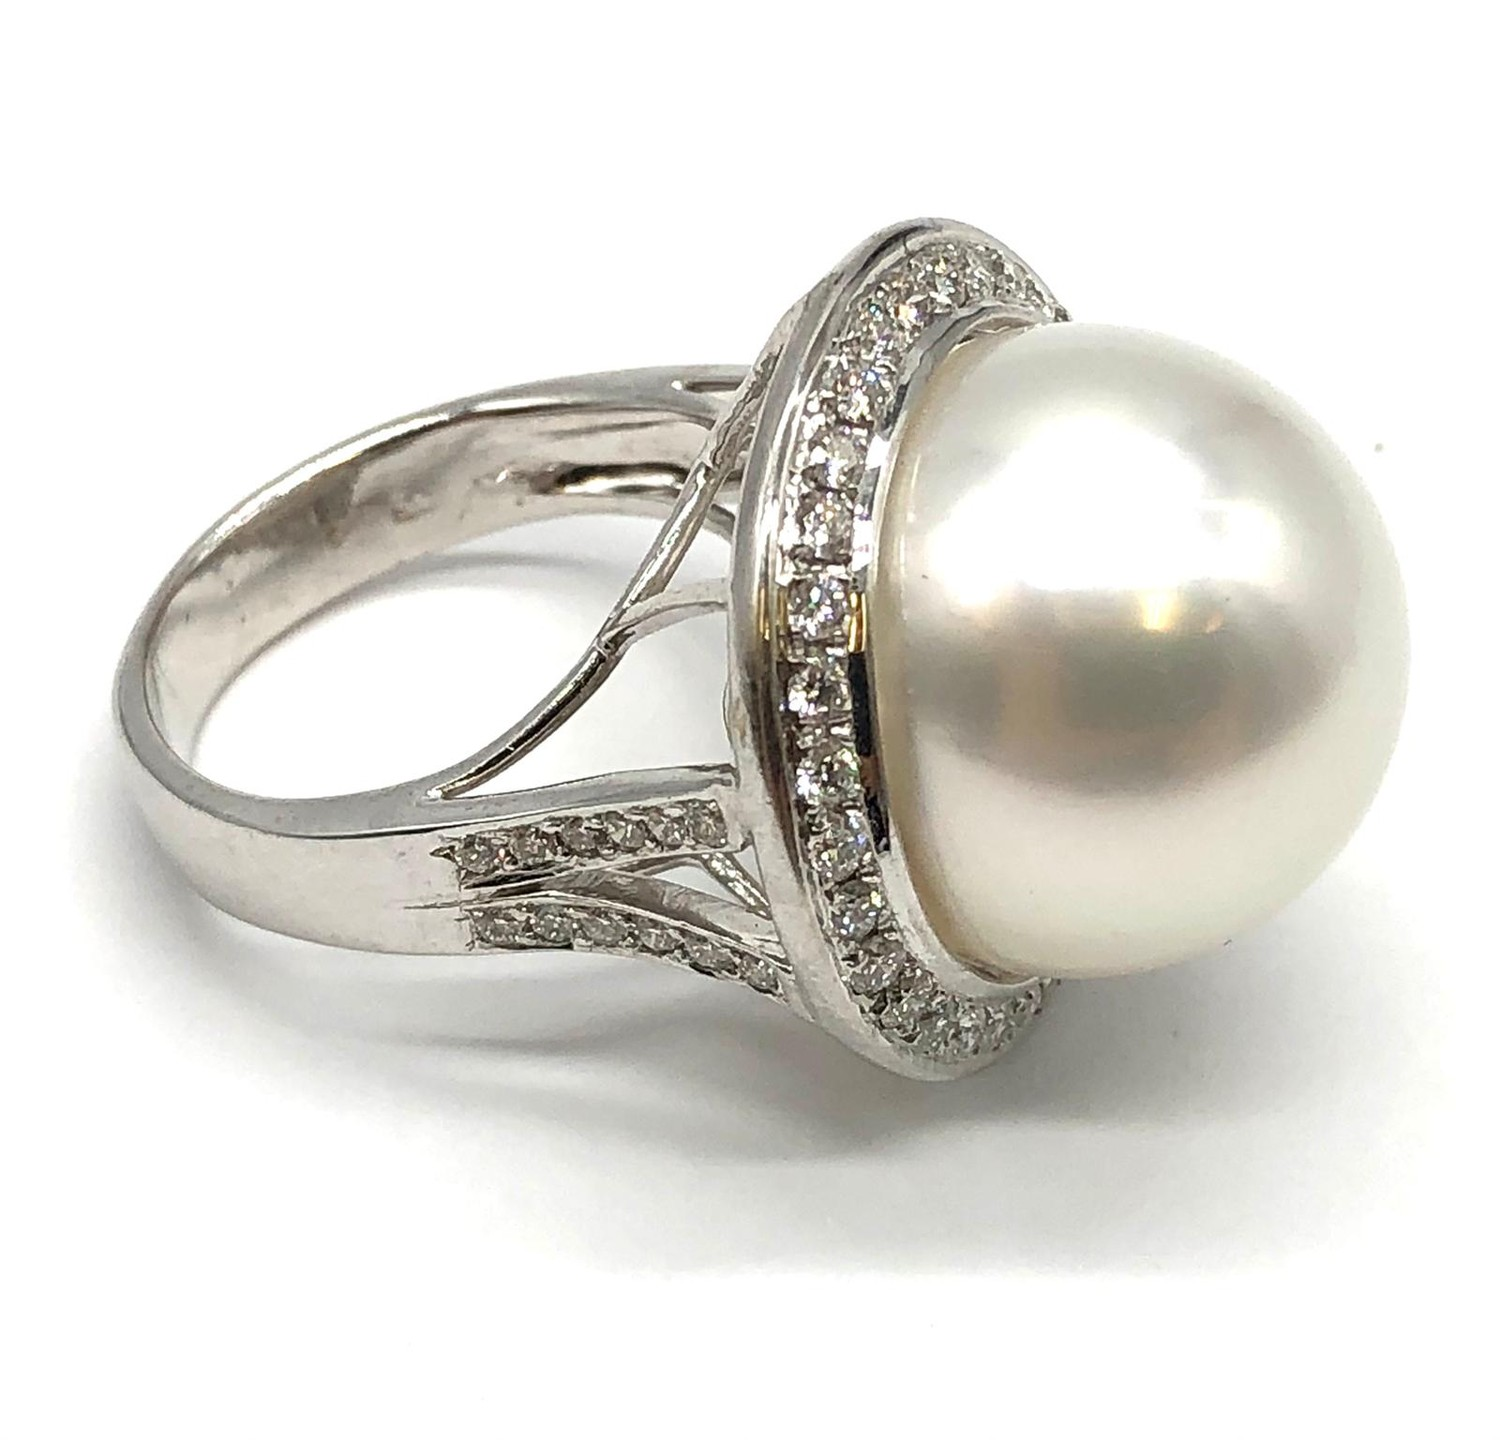 A large Kimoto pearl (17mm diameter) ring set in diamond and 18ct white gold ring, weight 14.43g and - Image 5 of 7